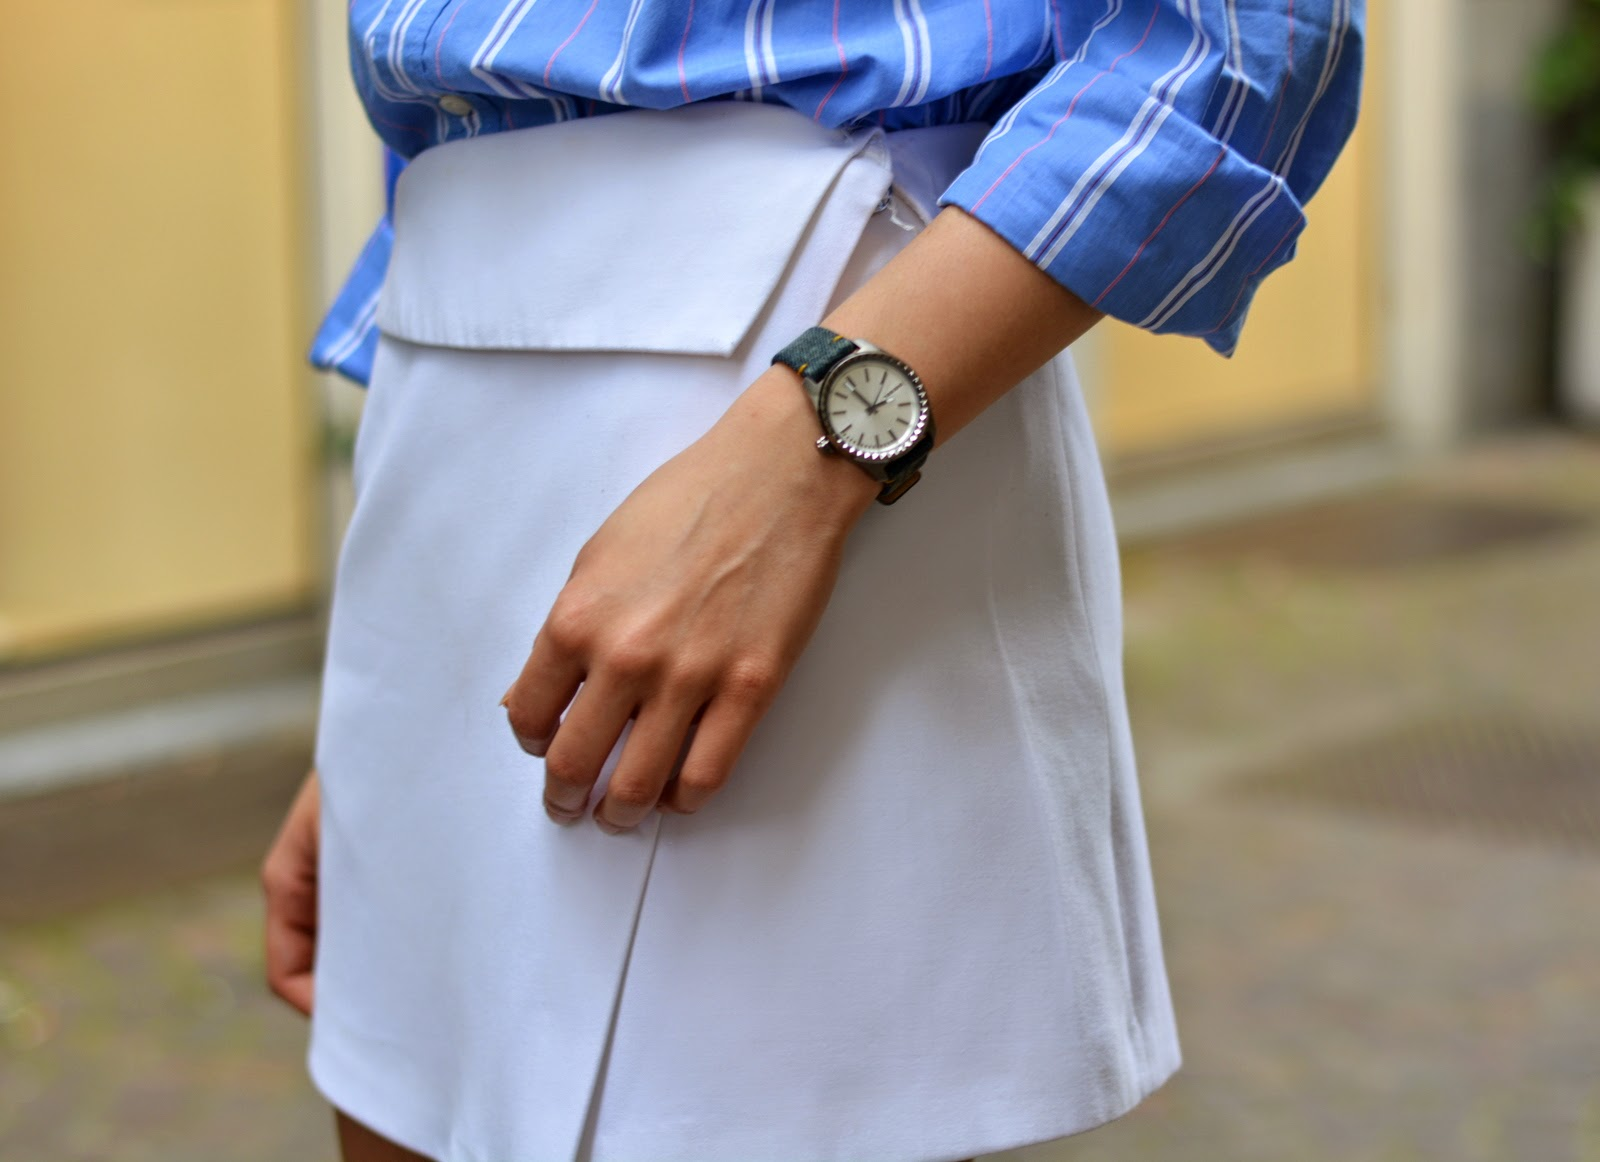 ootd, girls wearing men's shirts, juliane borges, culture and trend, diesel, zara, choies, pepe jeans, model, watch, outfit